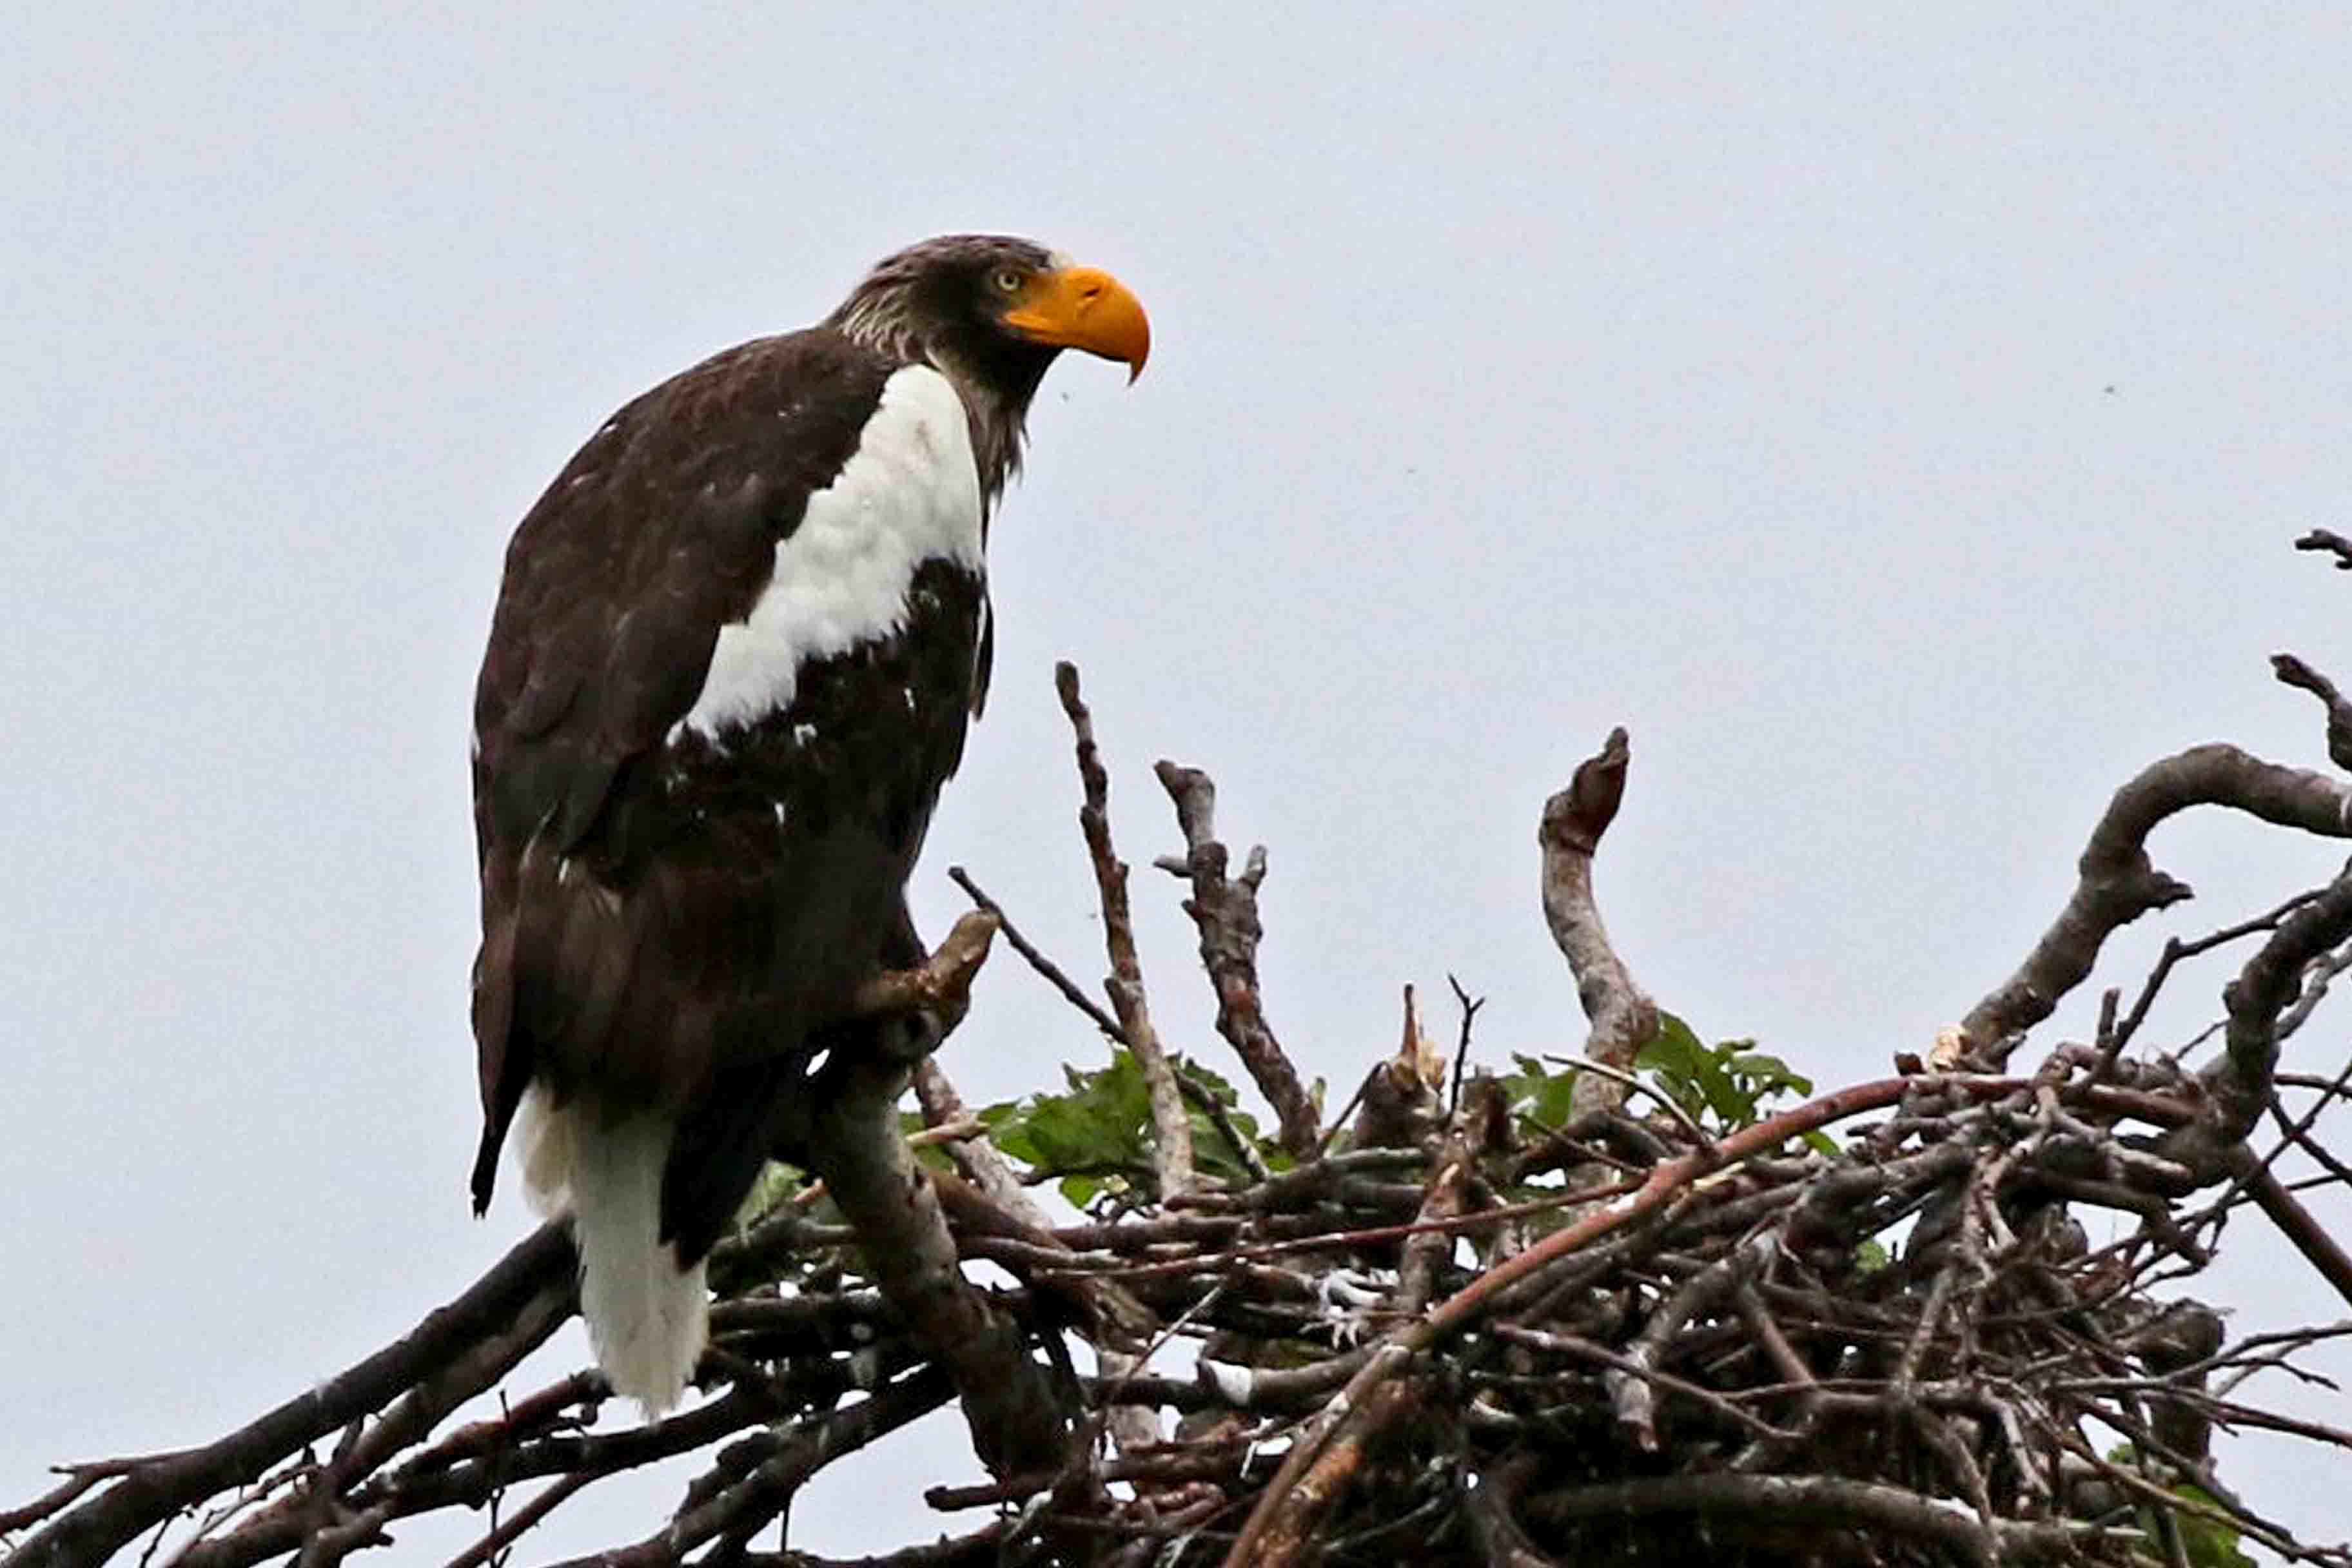 The prize was the Steller's sea Eagle, the heaviest eagle in the world, with a beak strong enough to crush a small car. Here it is at its nest, which is about 2m wide